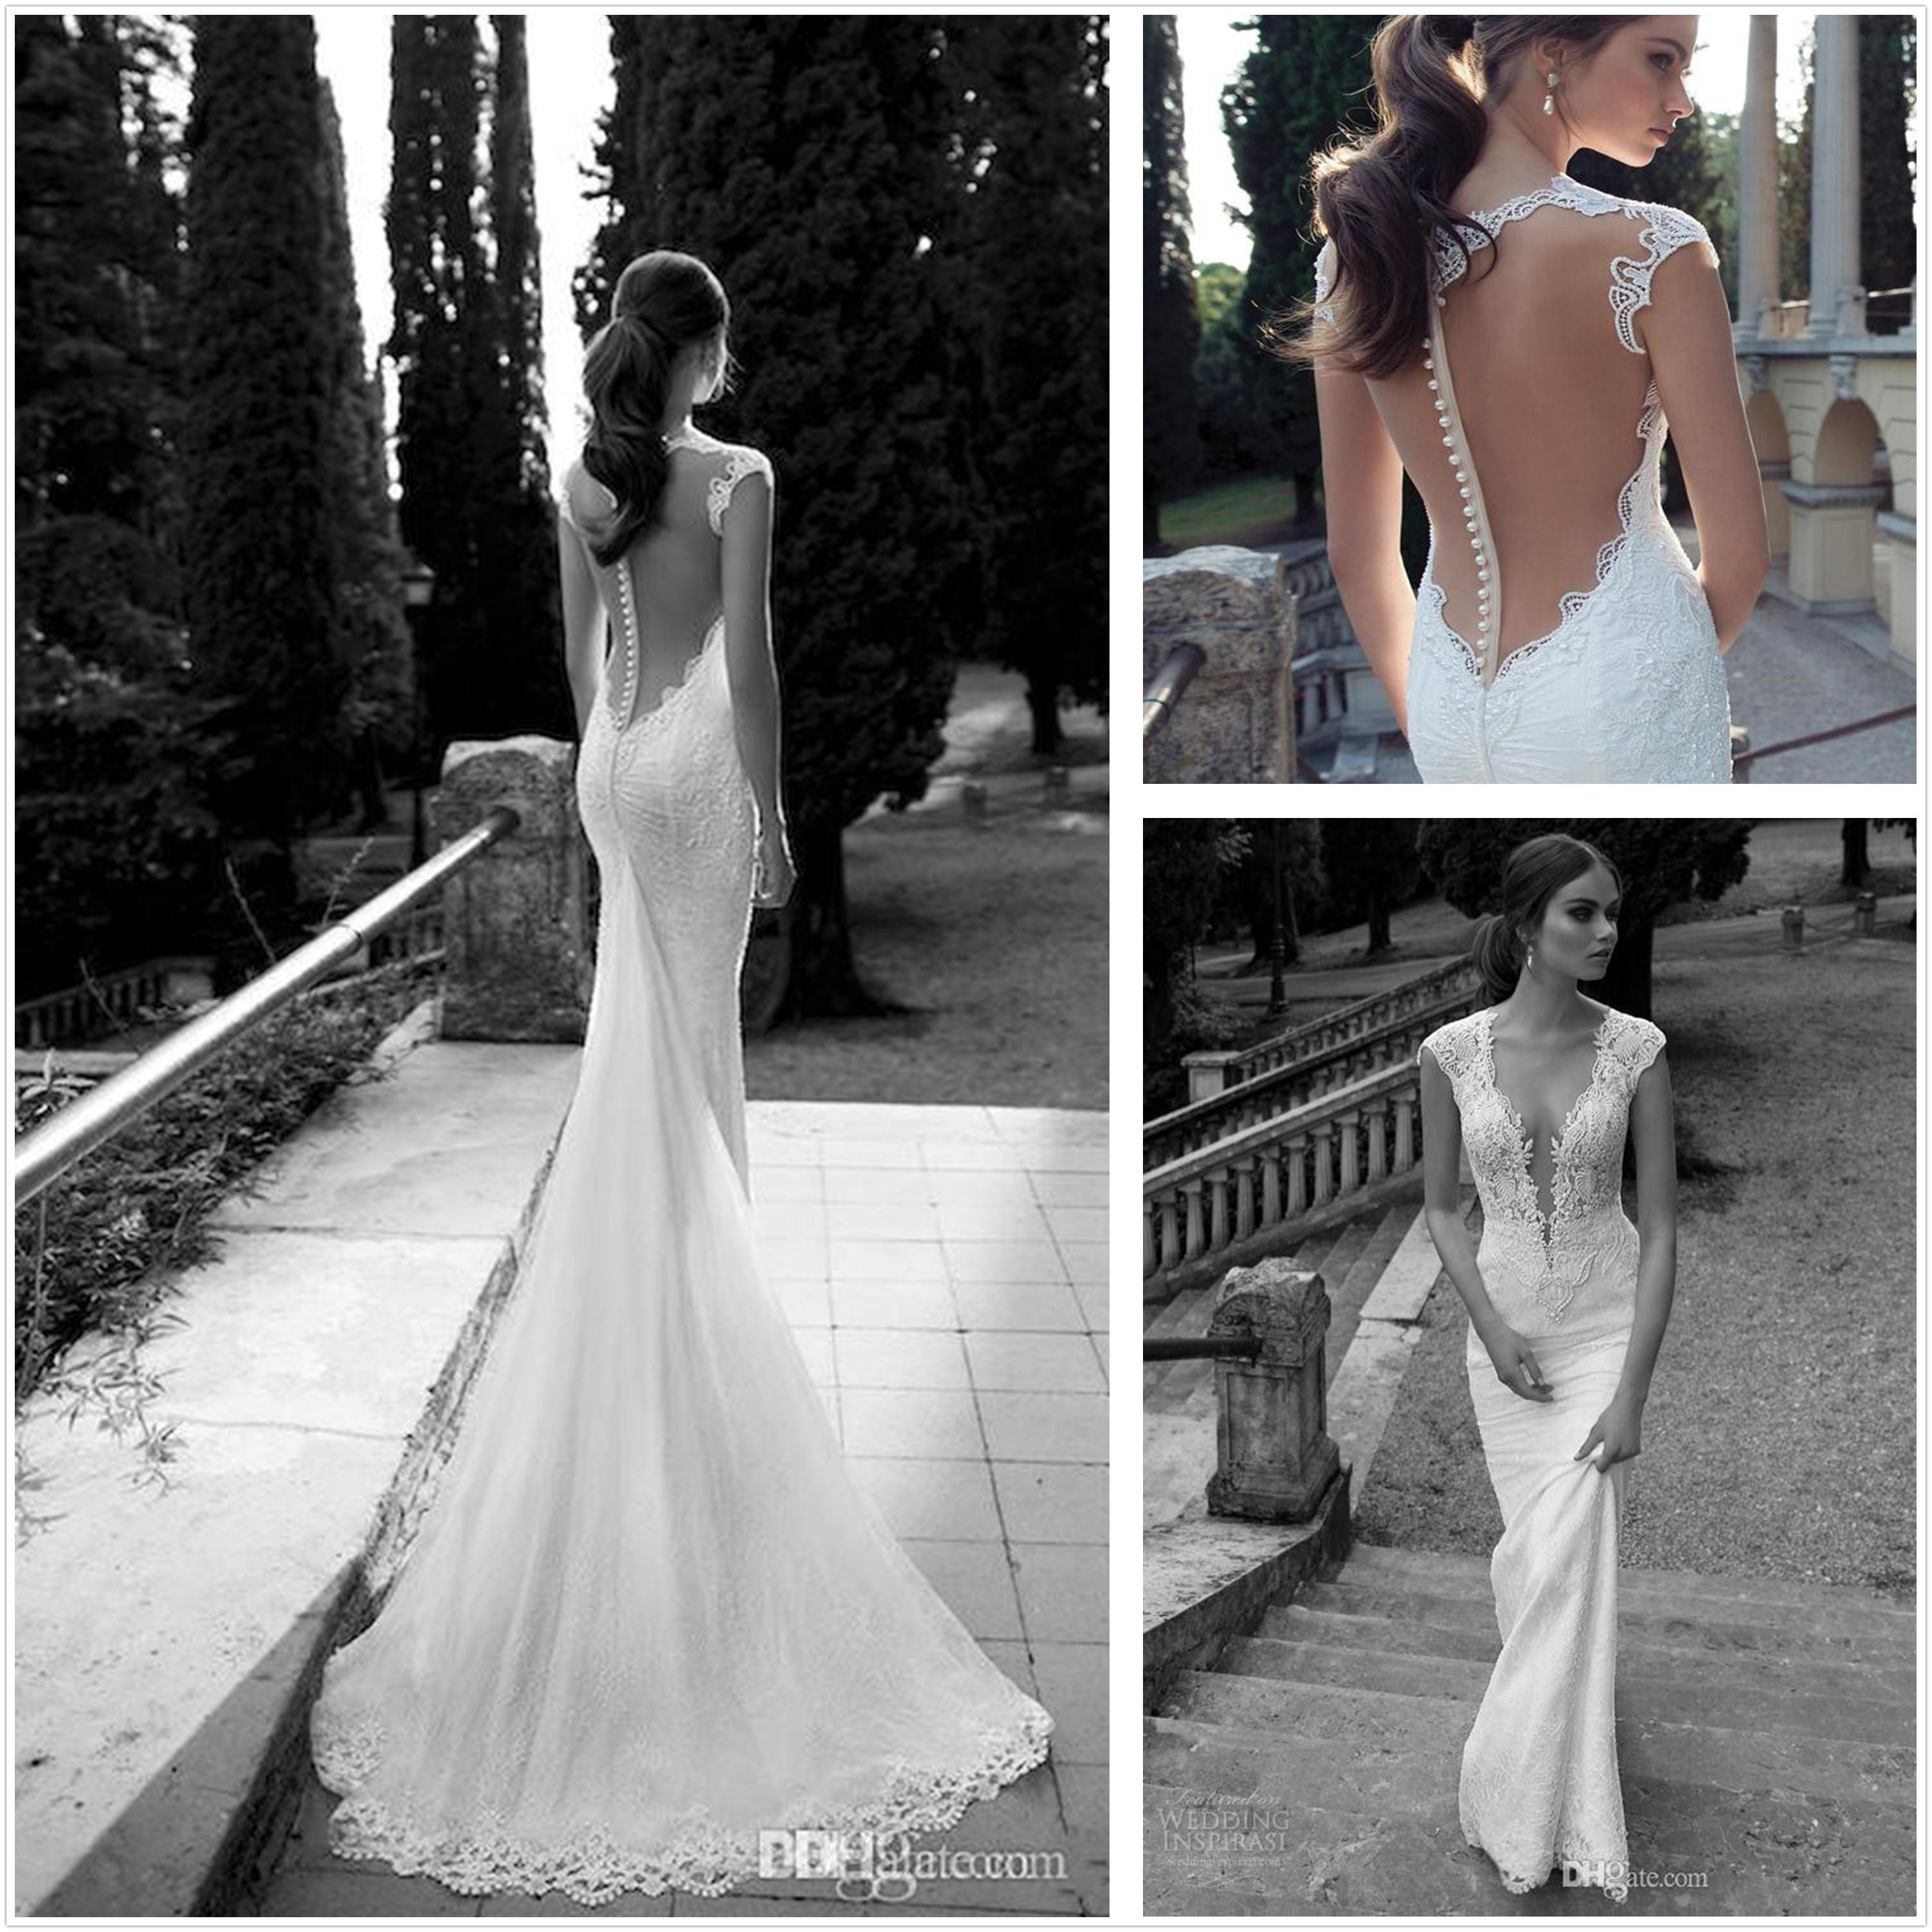 The Best Wedding Dresses Winter 2014 | Dress images